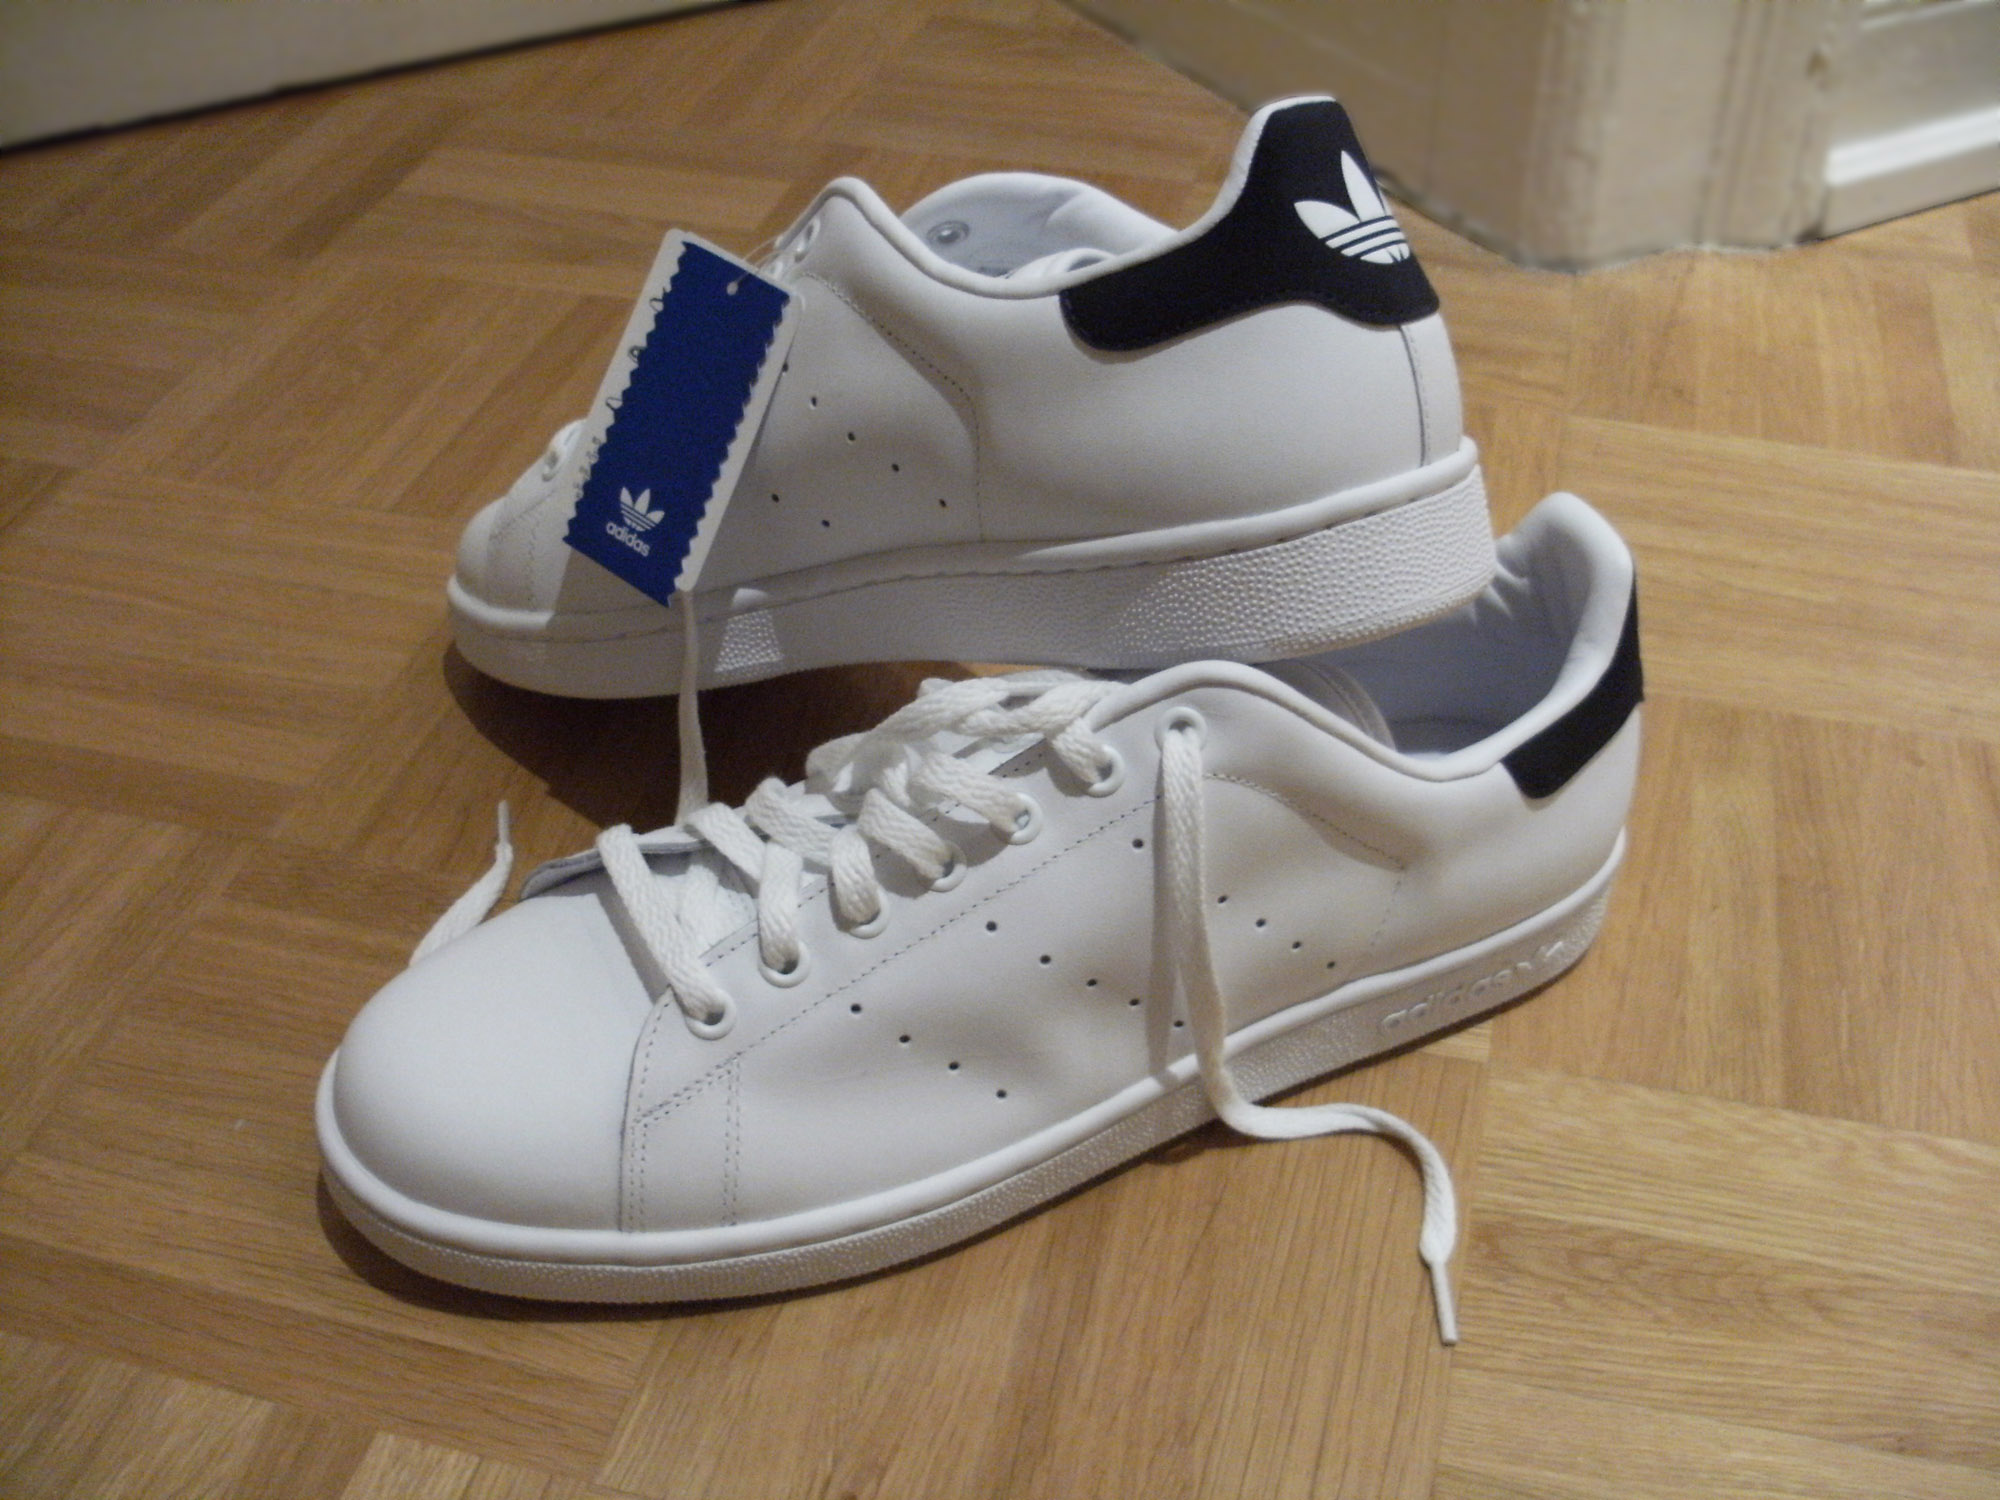 File:Adidas Stan Smith wht-blk.jpg